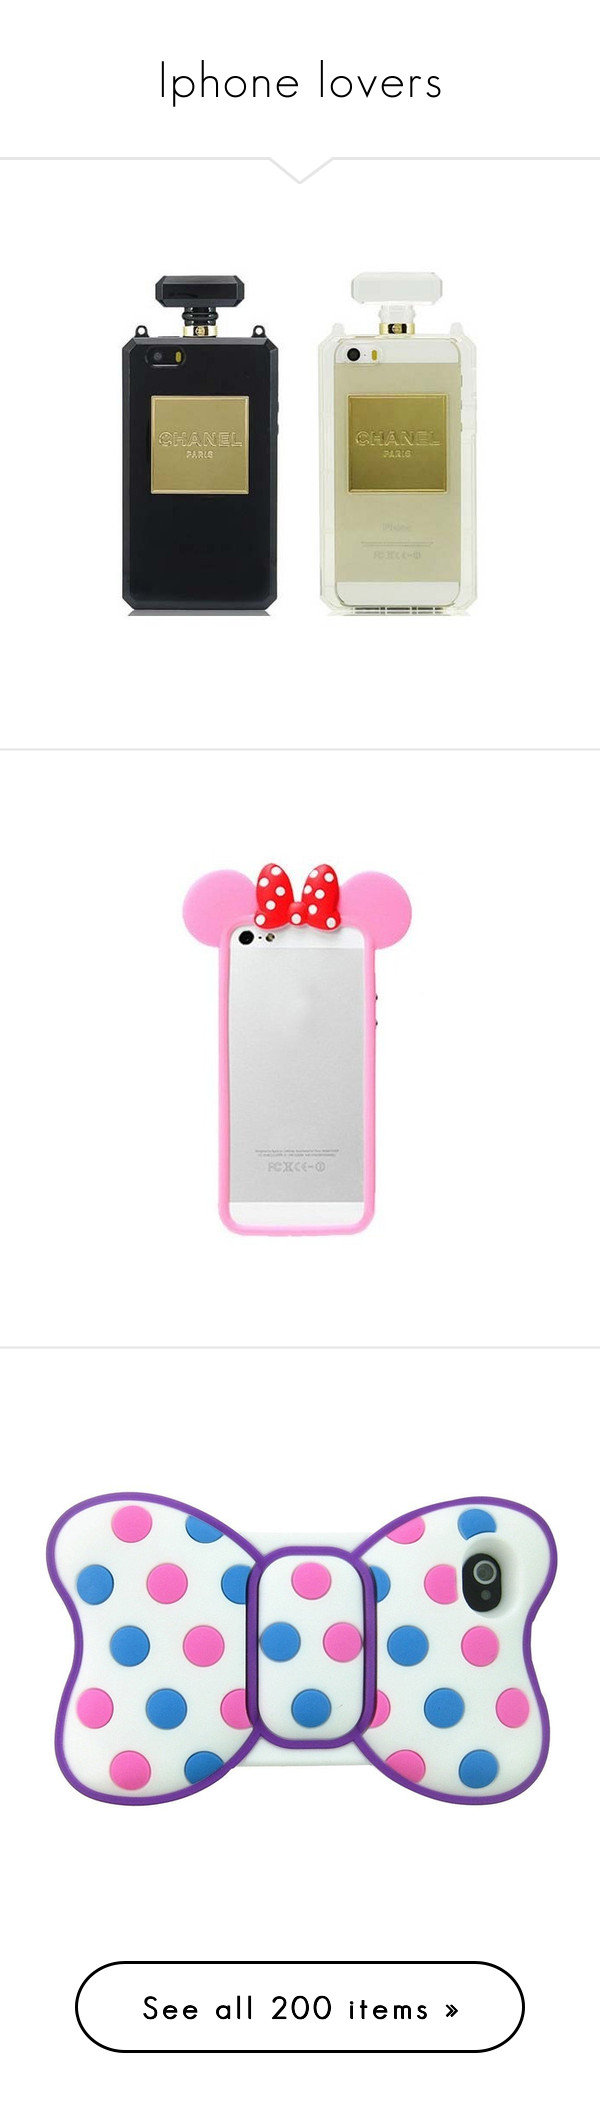 """""""Iphone lovers"""" by destinylove66 ❤ liked on Polyvore featuring accessories, tech accessories, phones, phone cases, cases, electronics, iphone sleeve case, iphone cover case, phone and iphone cases"""